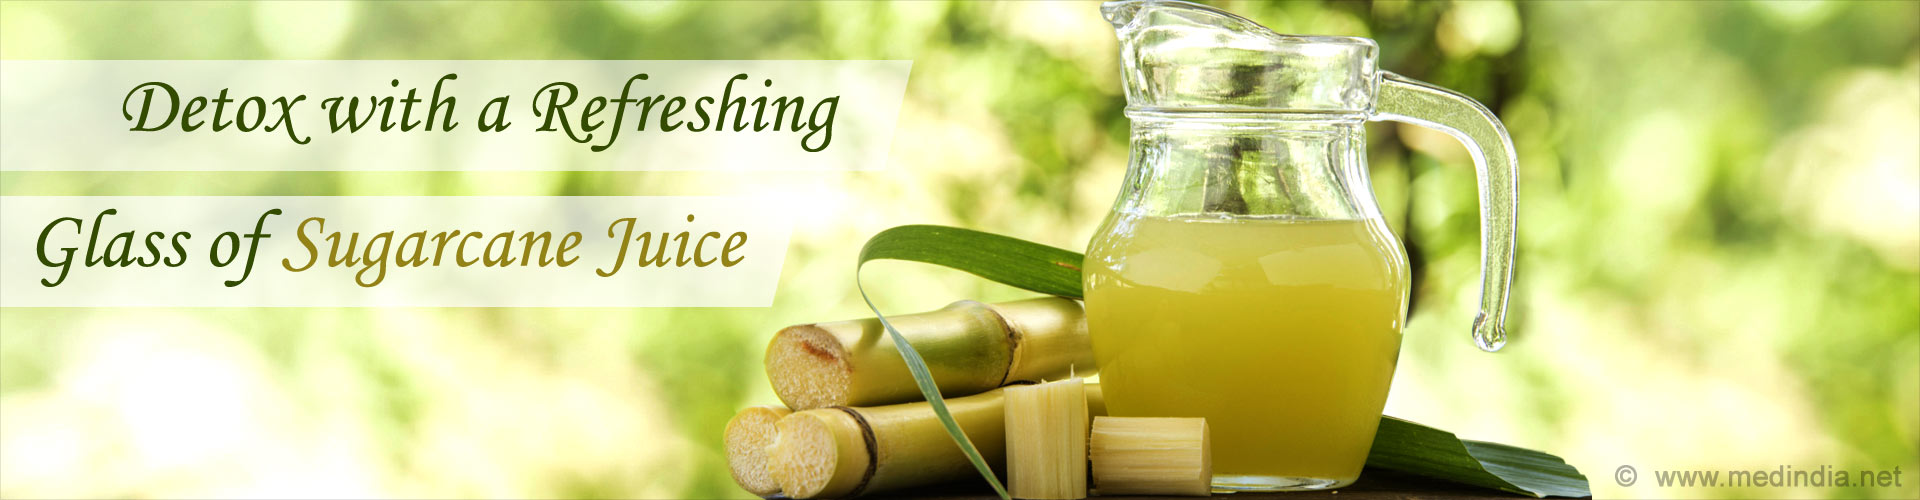 Health Benefits of Sugarcane Juice and Coconut Water